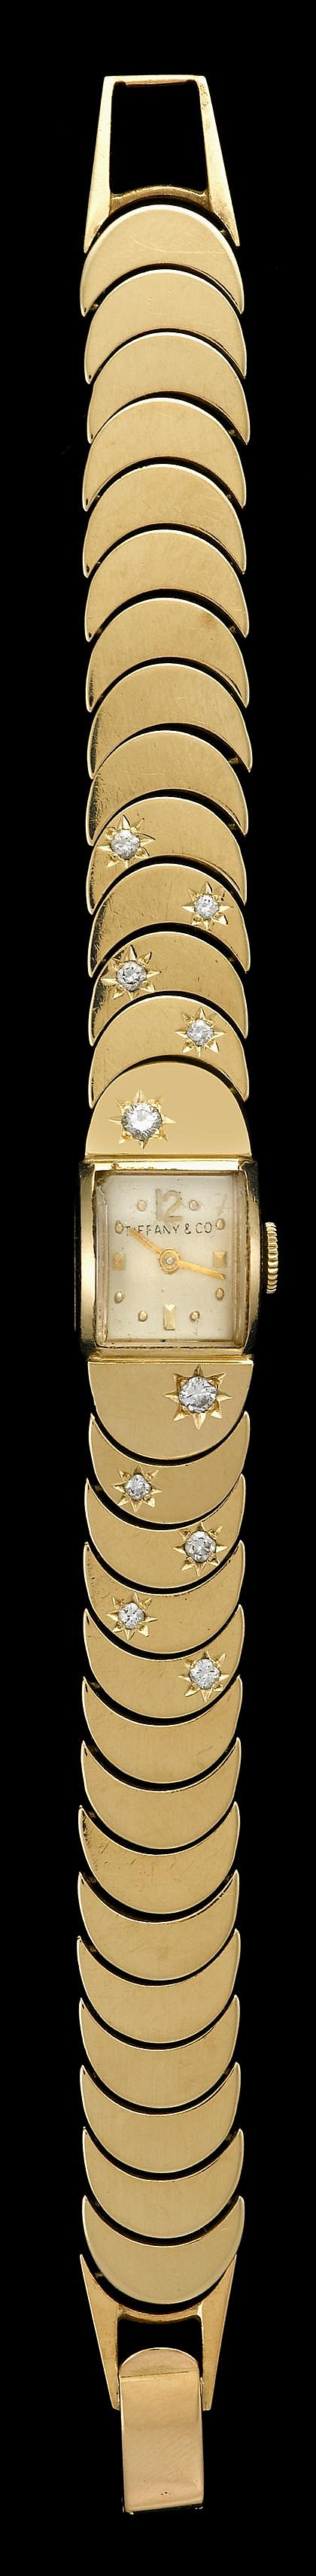 Retro 14 karat yellow gold and diamond wristwatch, Tiffany & Co., , Square case, silver tone face with Arabic numeral and dot dial, sig